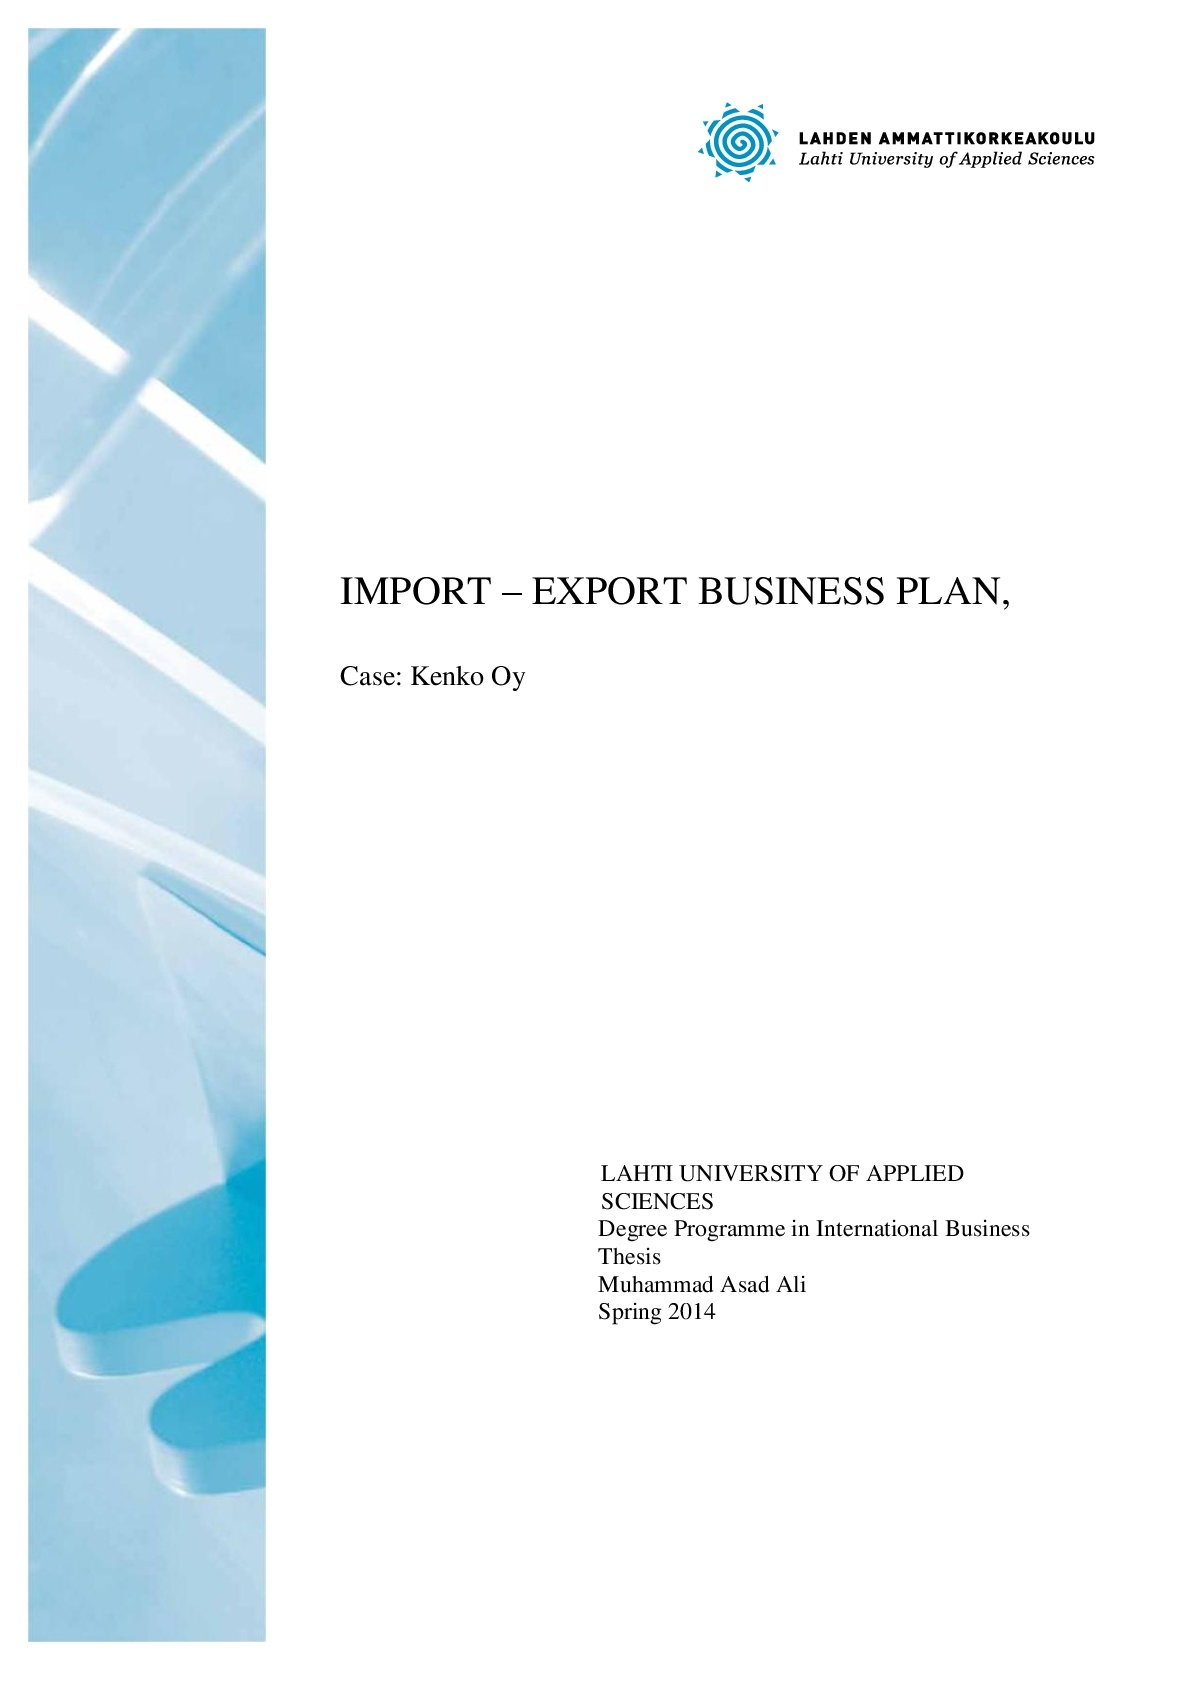 import export business plan thesis 001